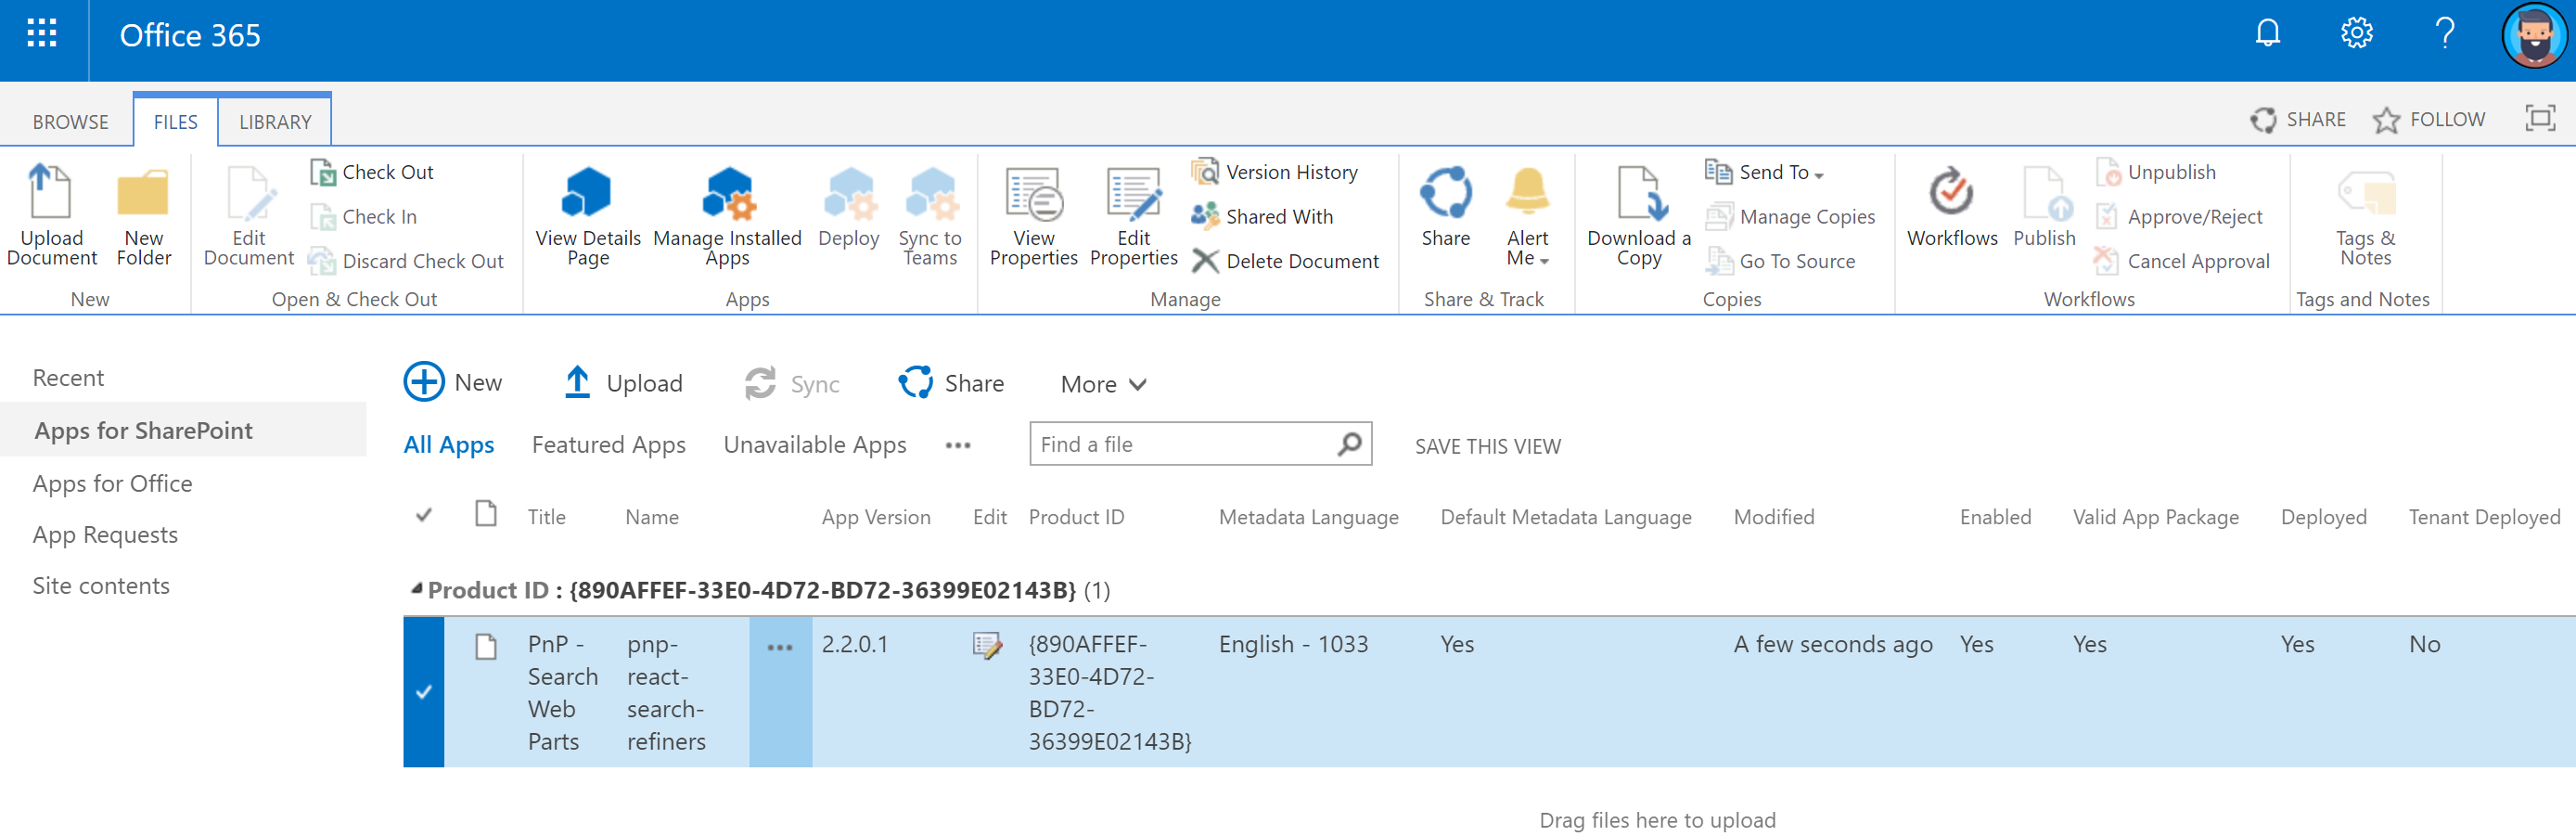 Categorize, organize and layout your Office 365 intranet